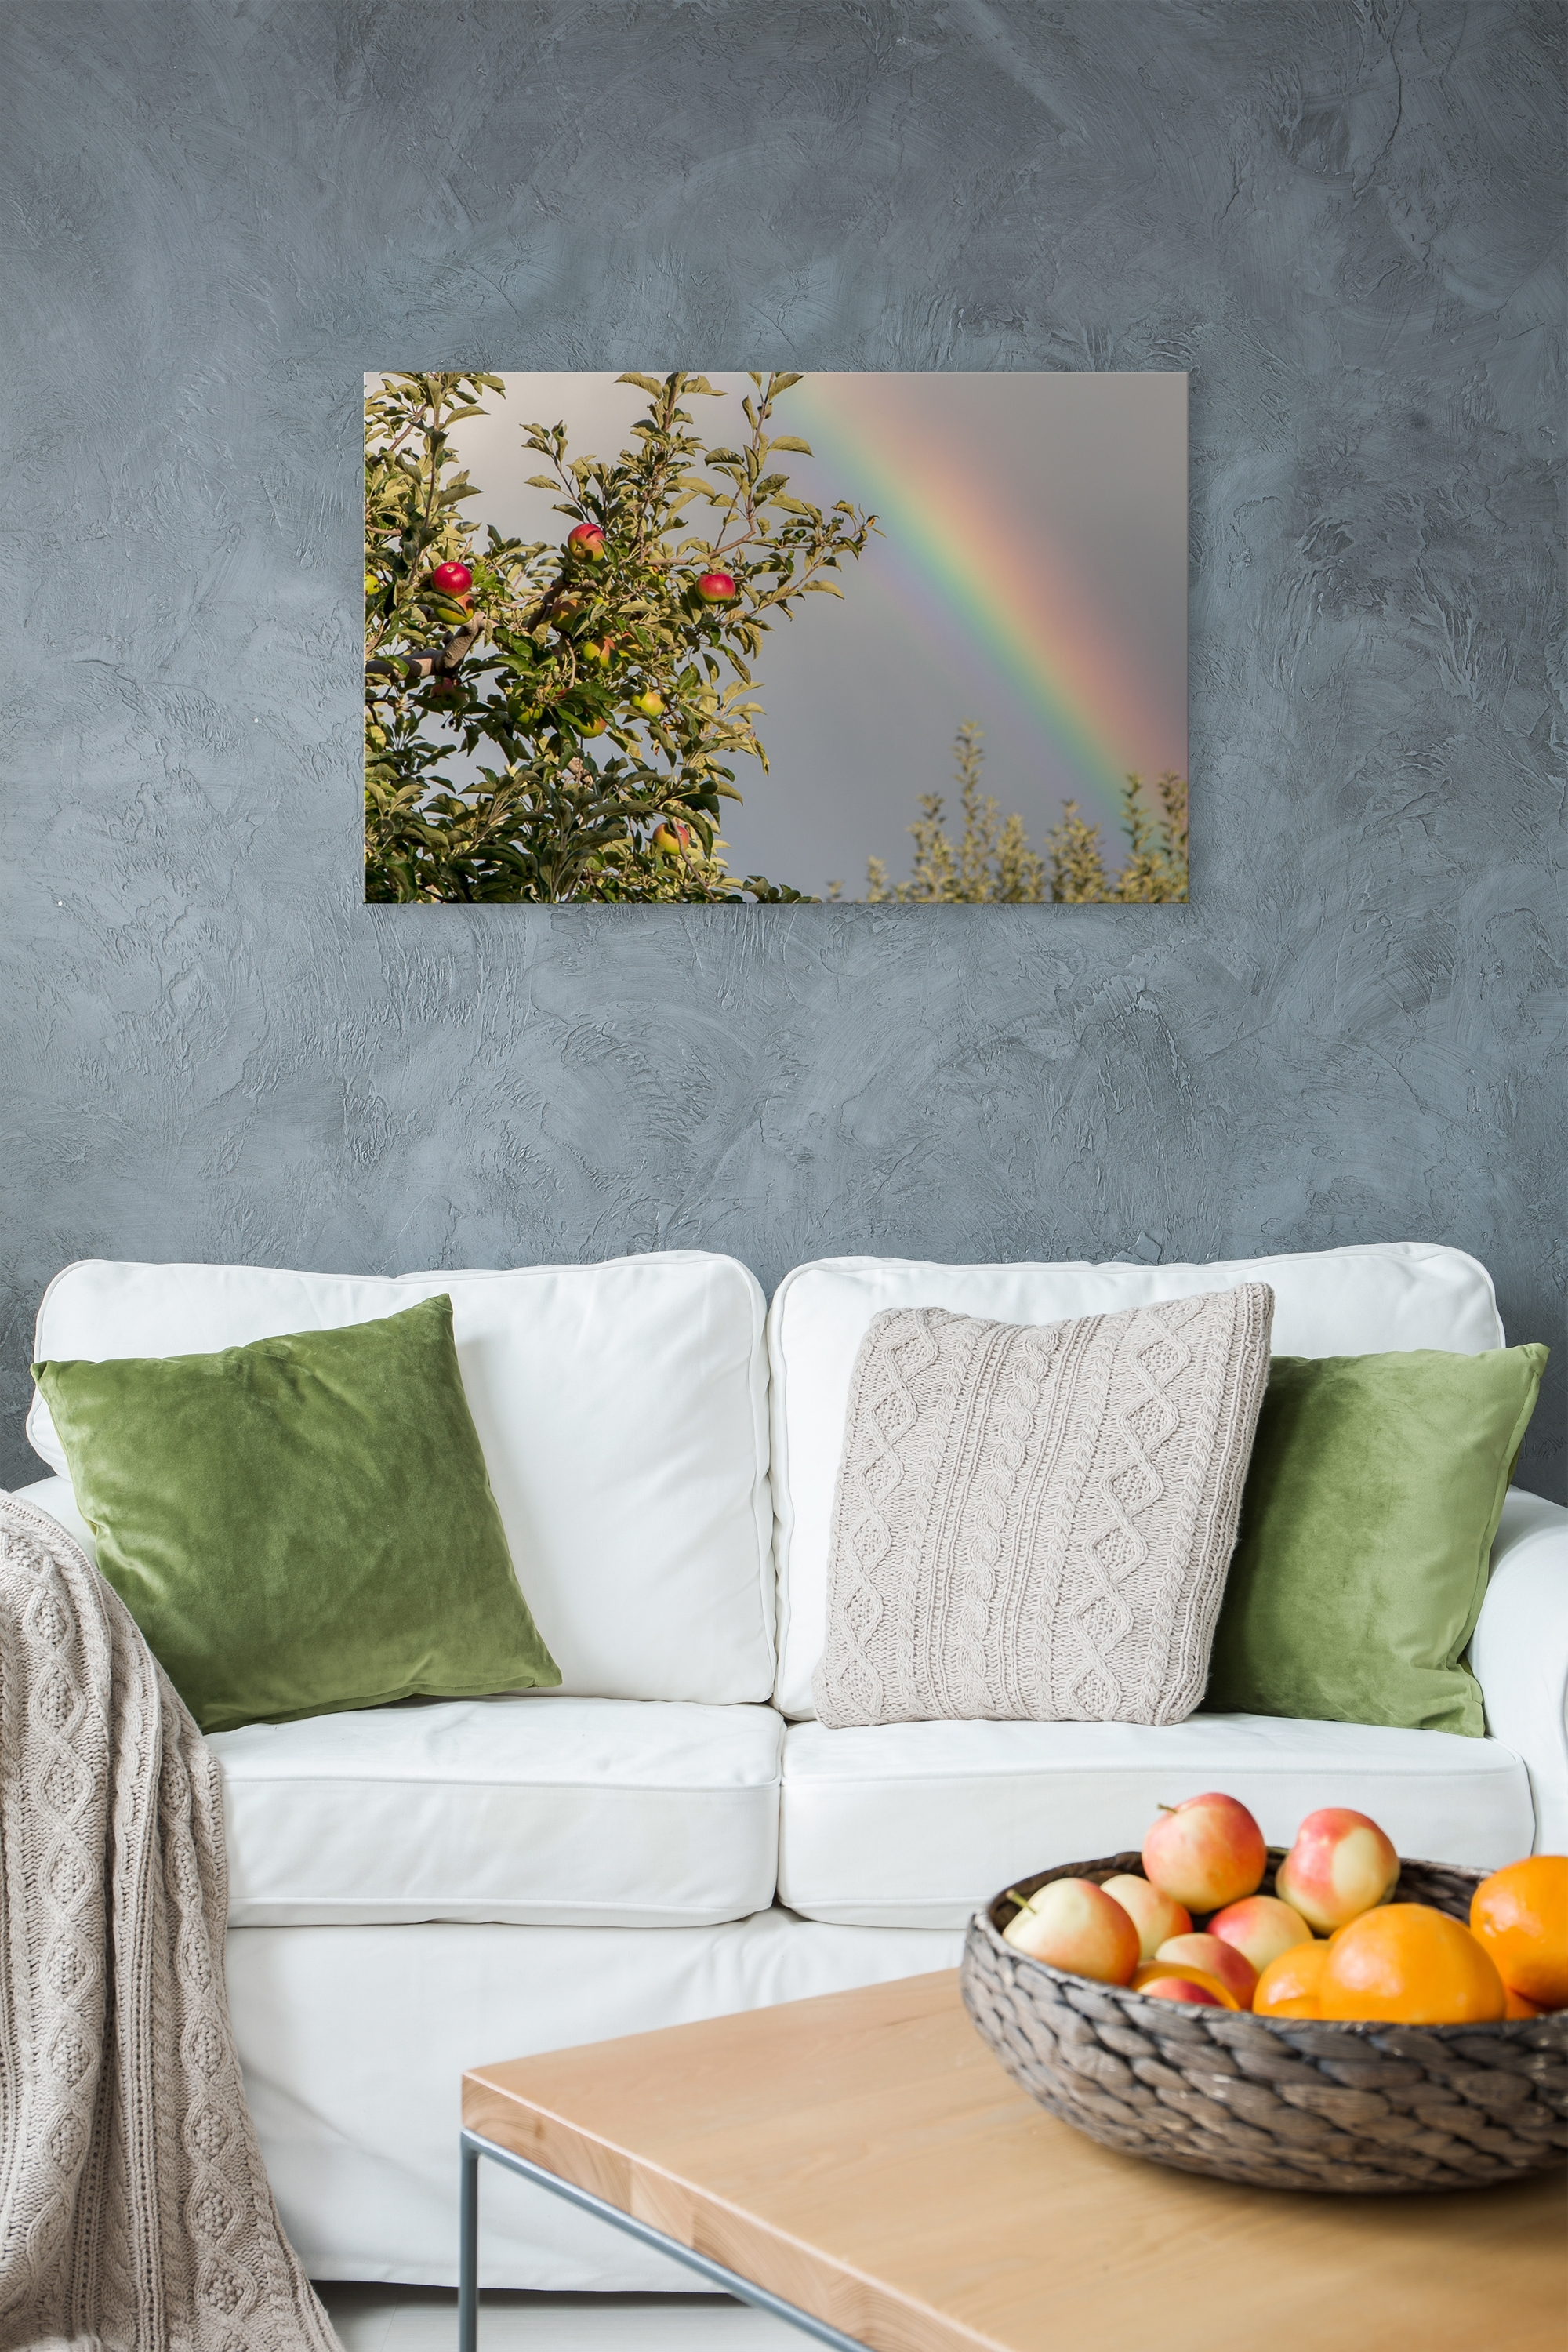 2017 Orchard Rainbow – Rogue Aurora Photography Inside Nature Wall Art (View 12 of 20)